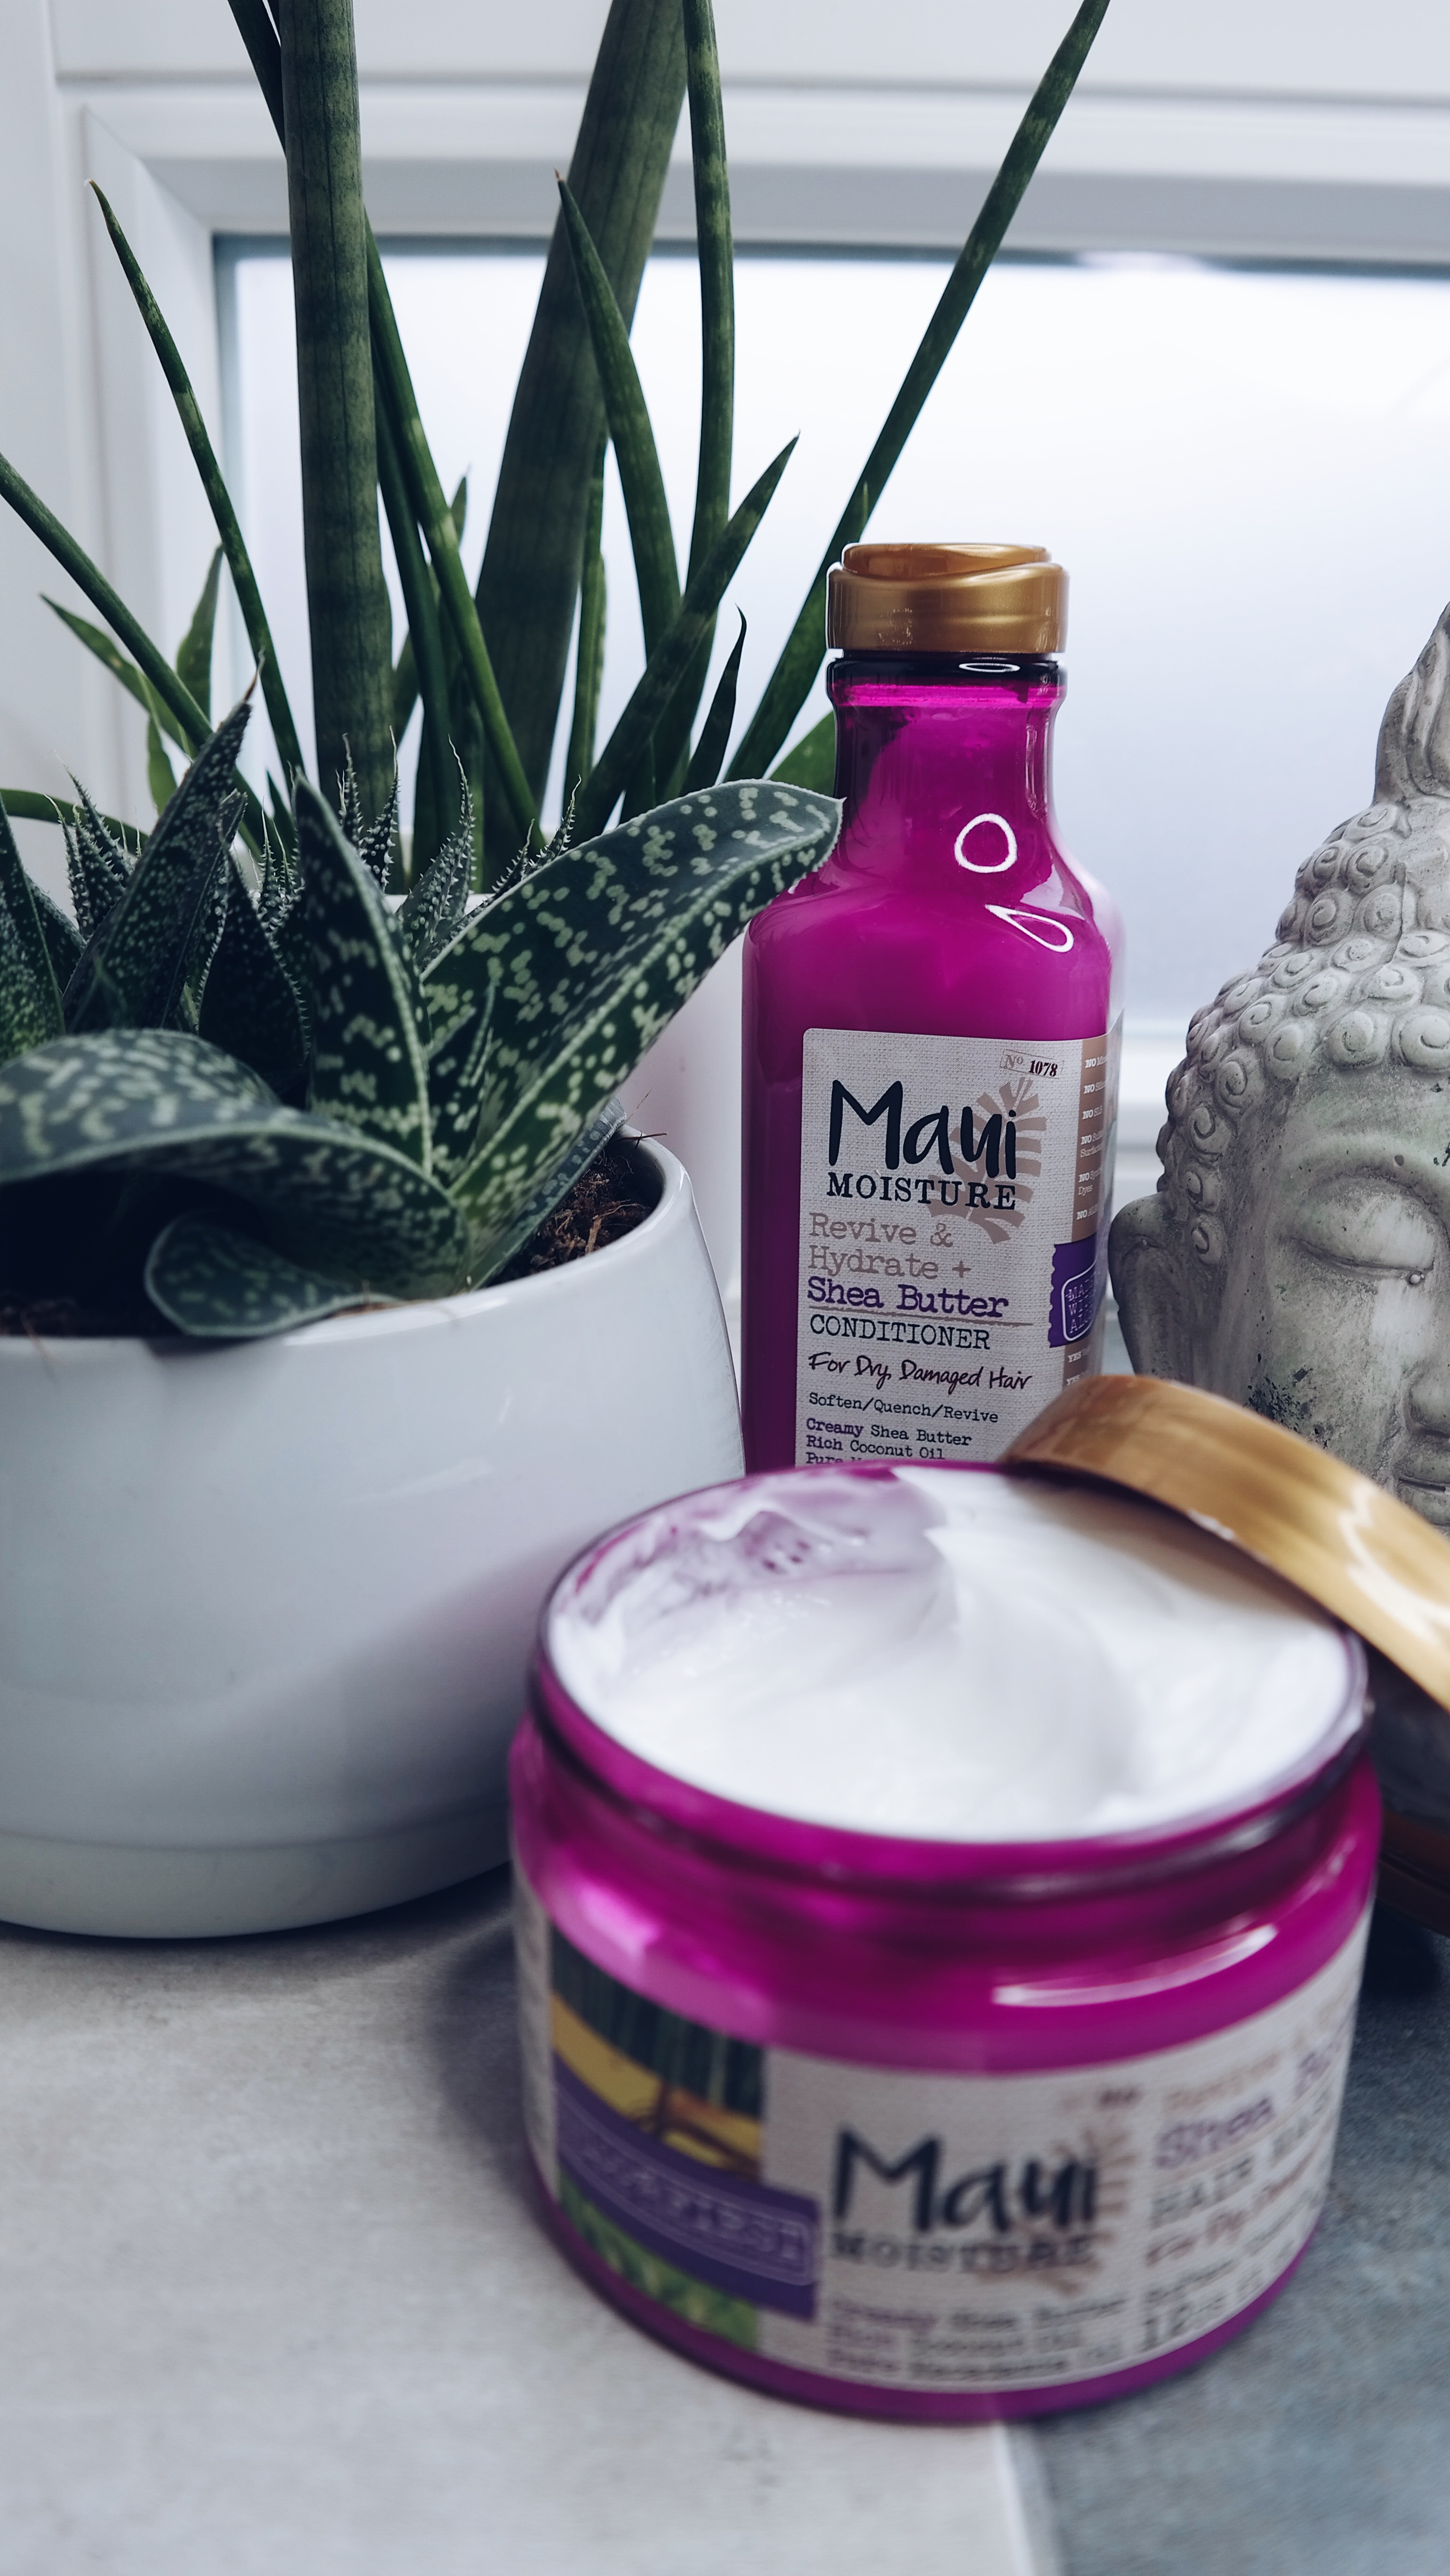 Maui Moisture Review: Revive & Hydrate & Curl Quench - Ronja